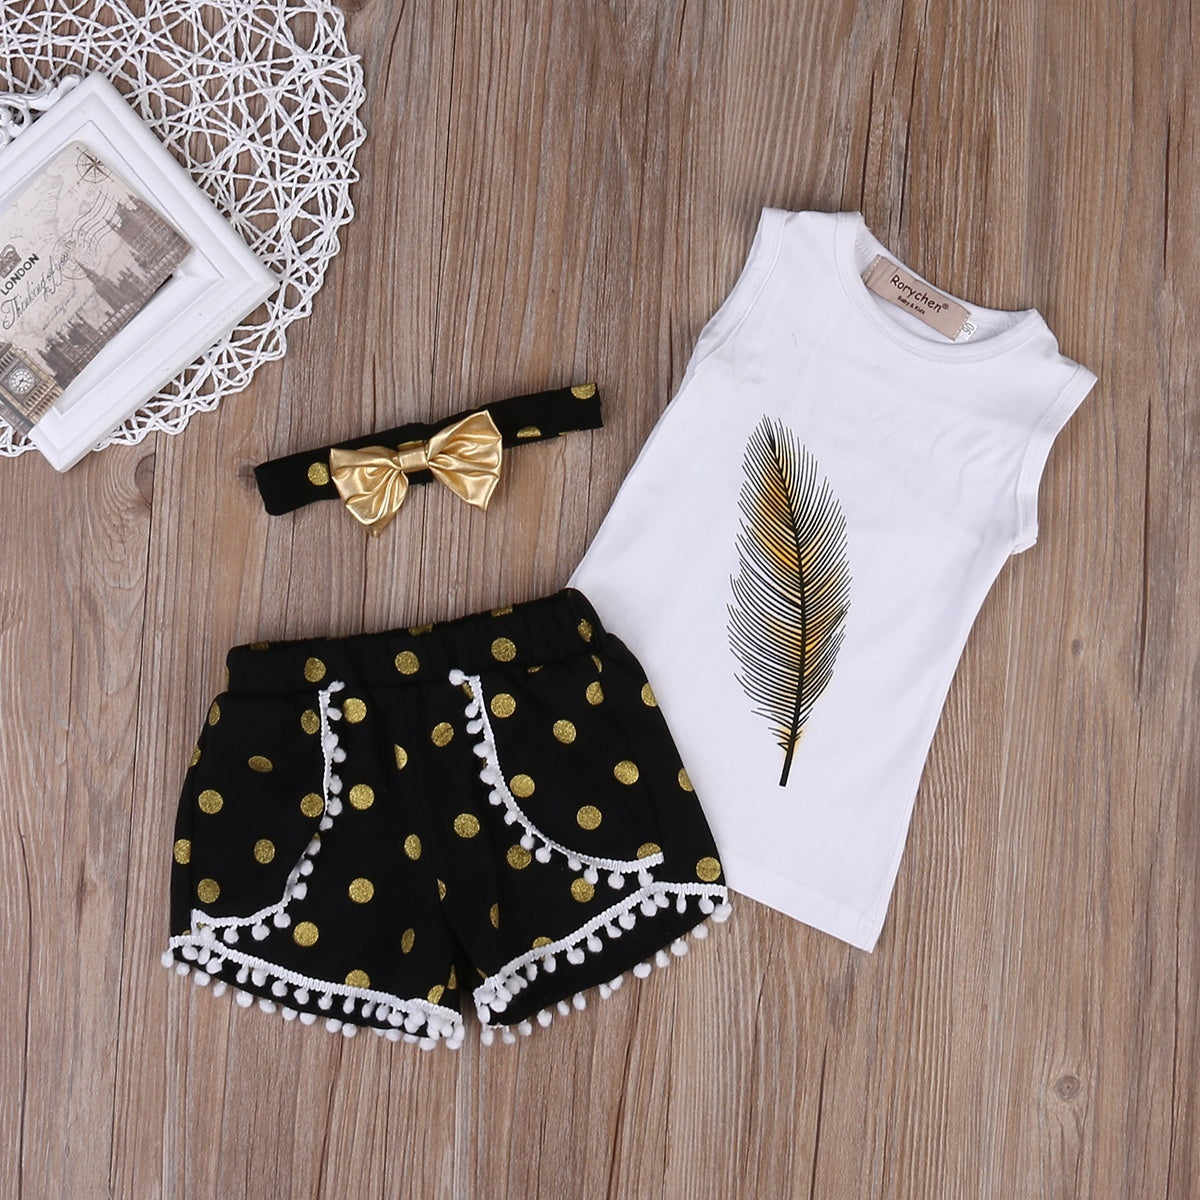 Girls T-shirt, Shorts, Tops+Pants+Headband (3Pcs Set)